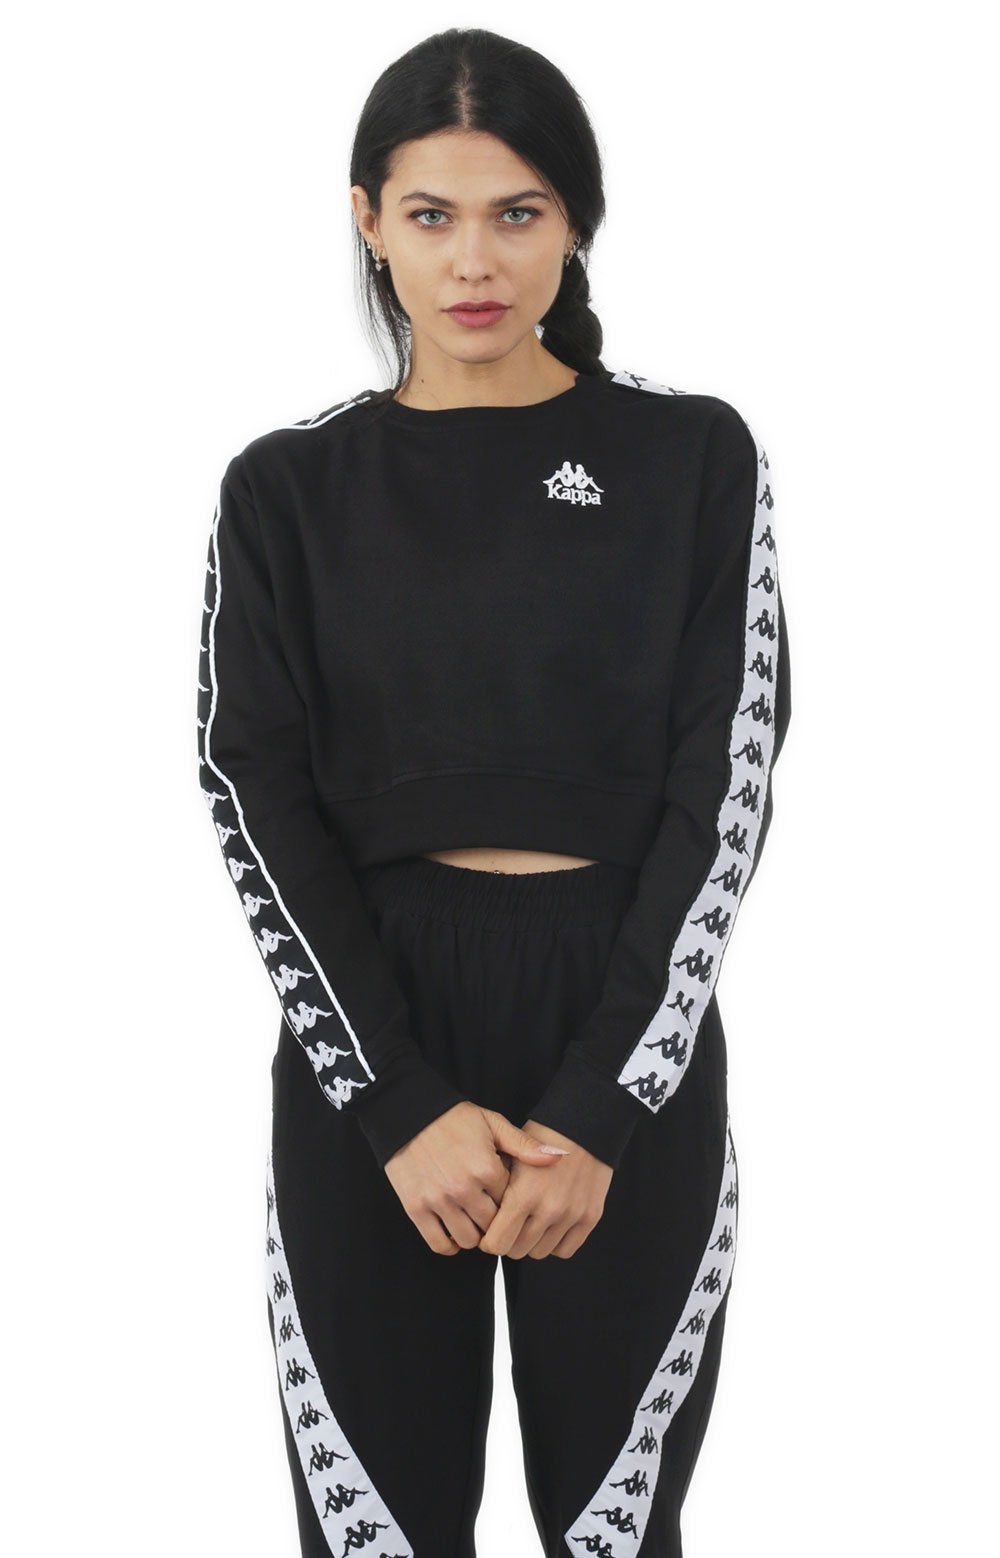 222 Banda Ays Alternating Banda Sweatshirt - Black/White